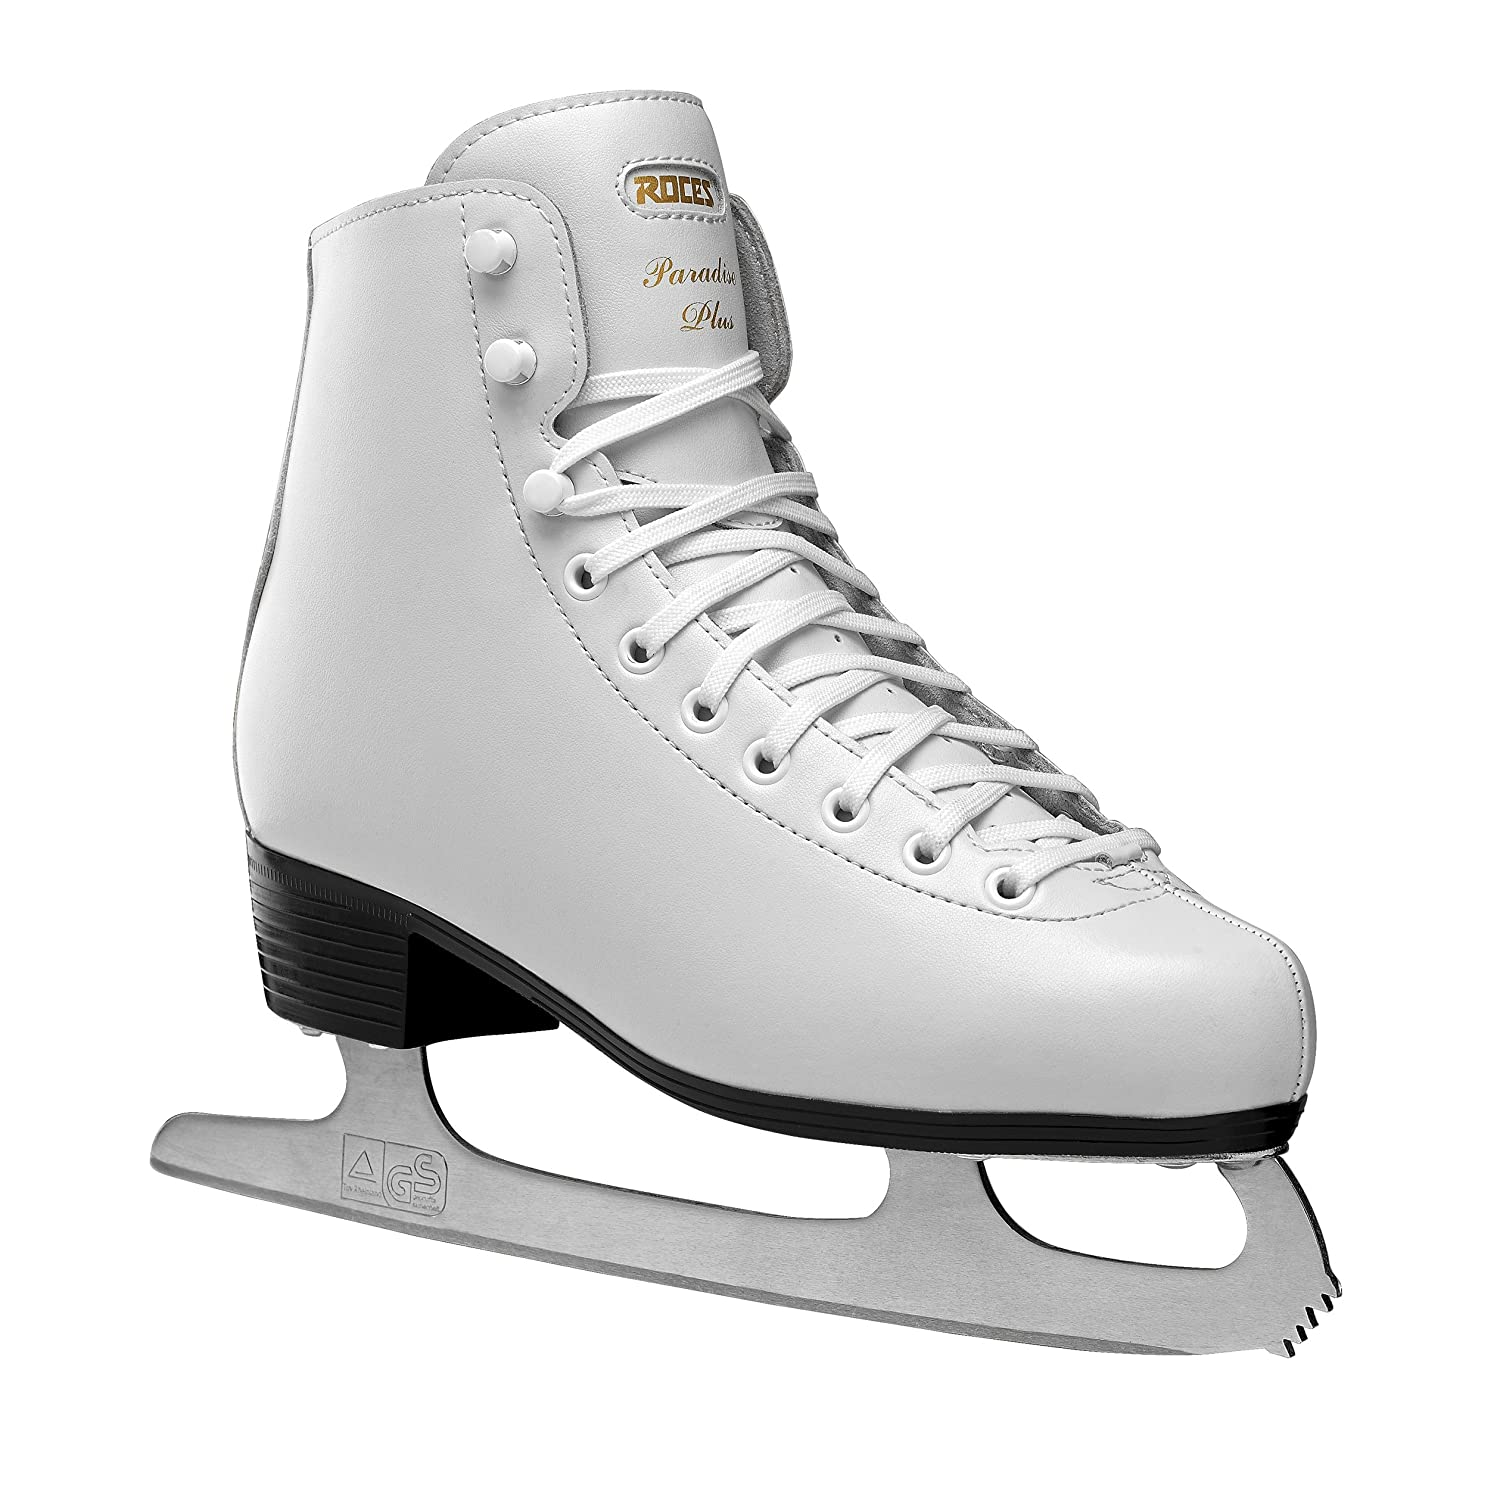 Roces Paradise/Lama - Women's Ice Skates 450634-001